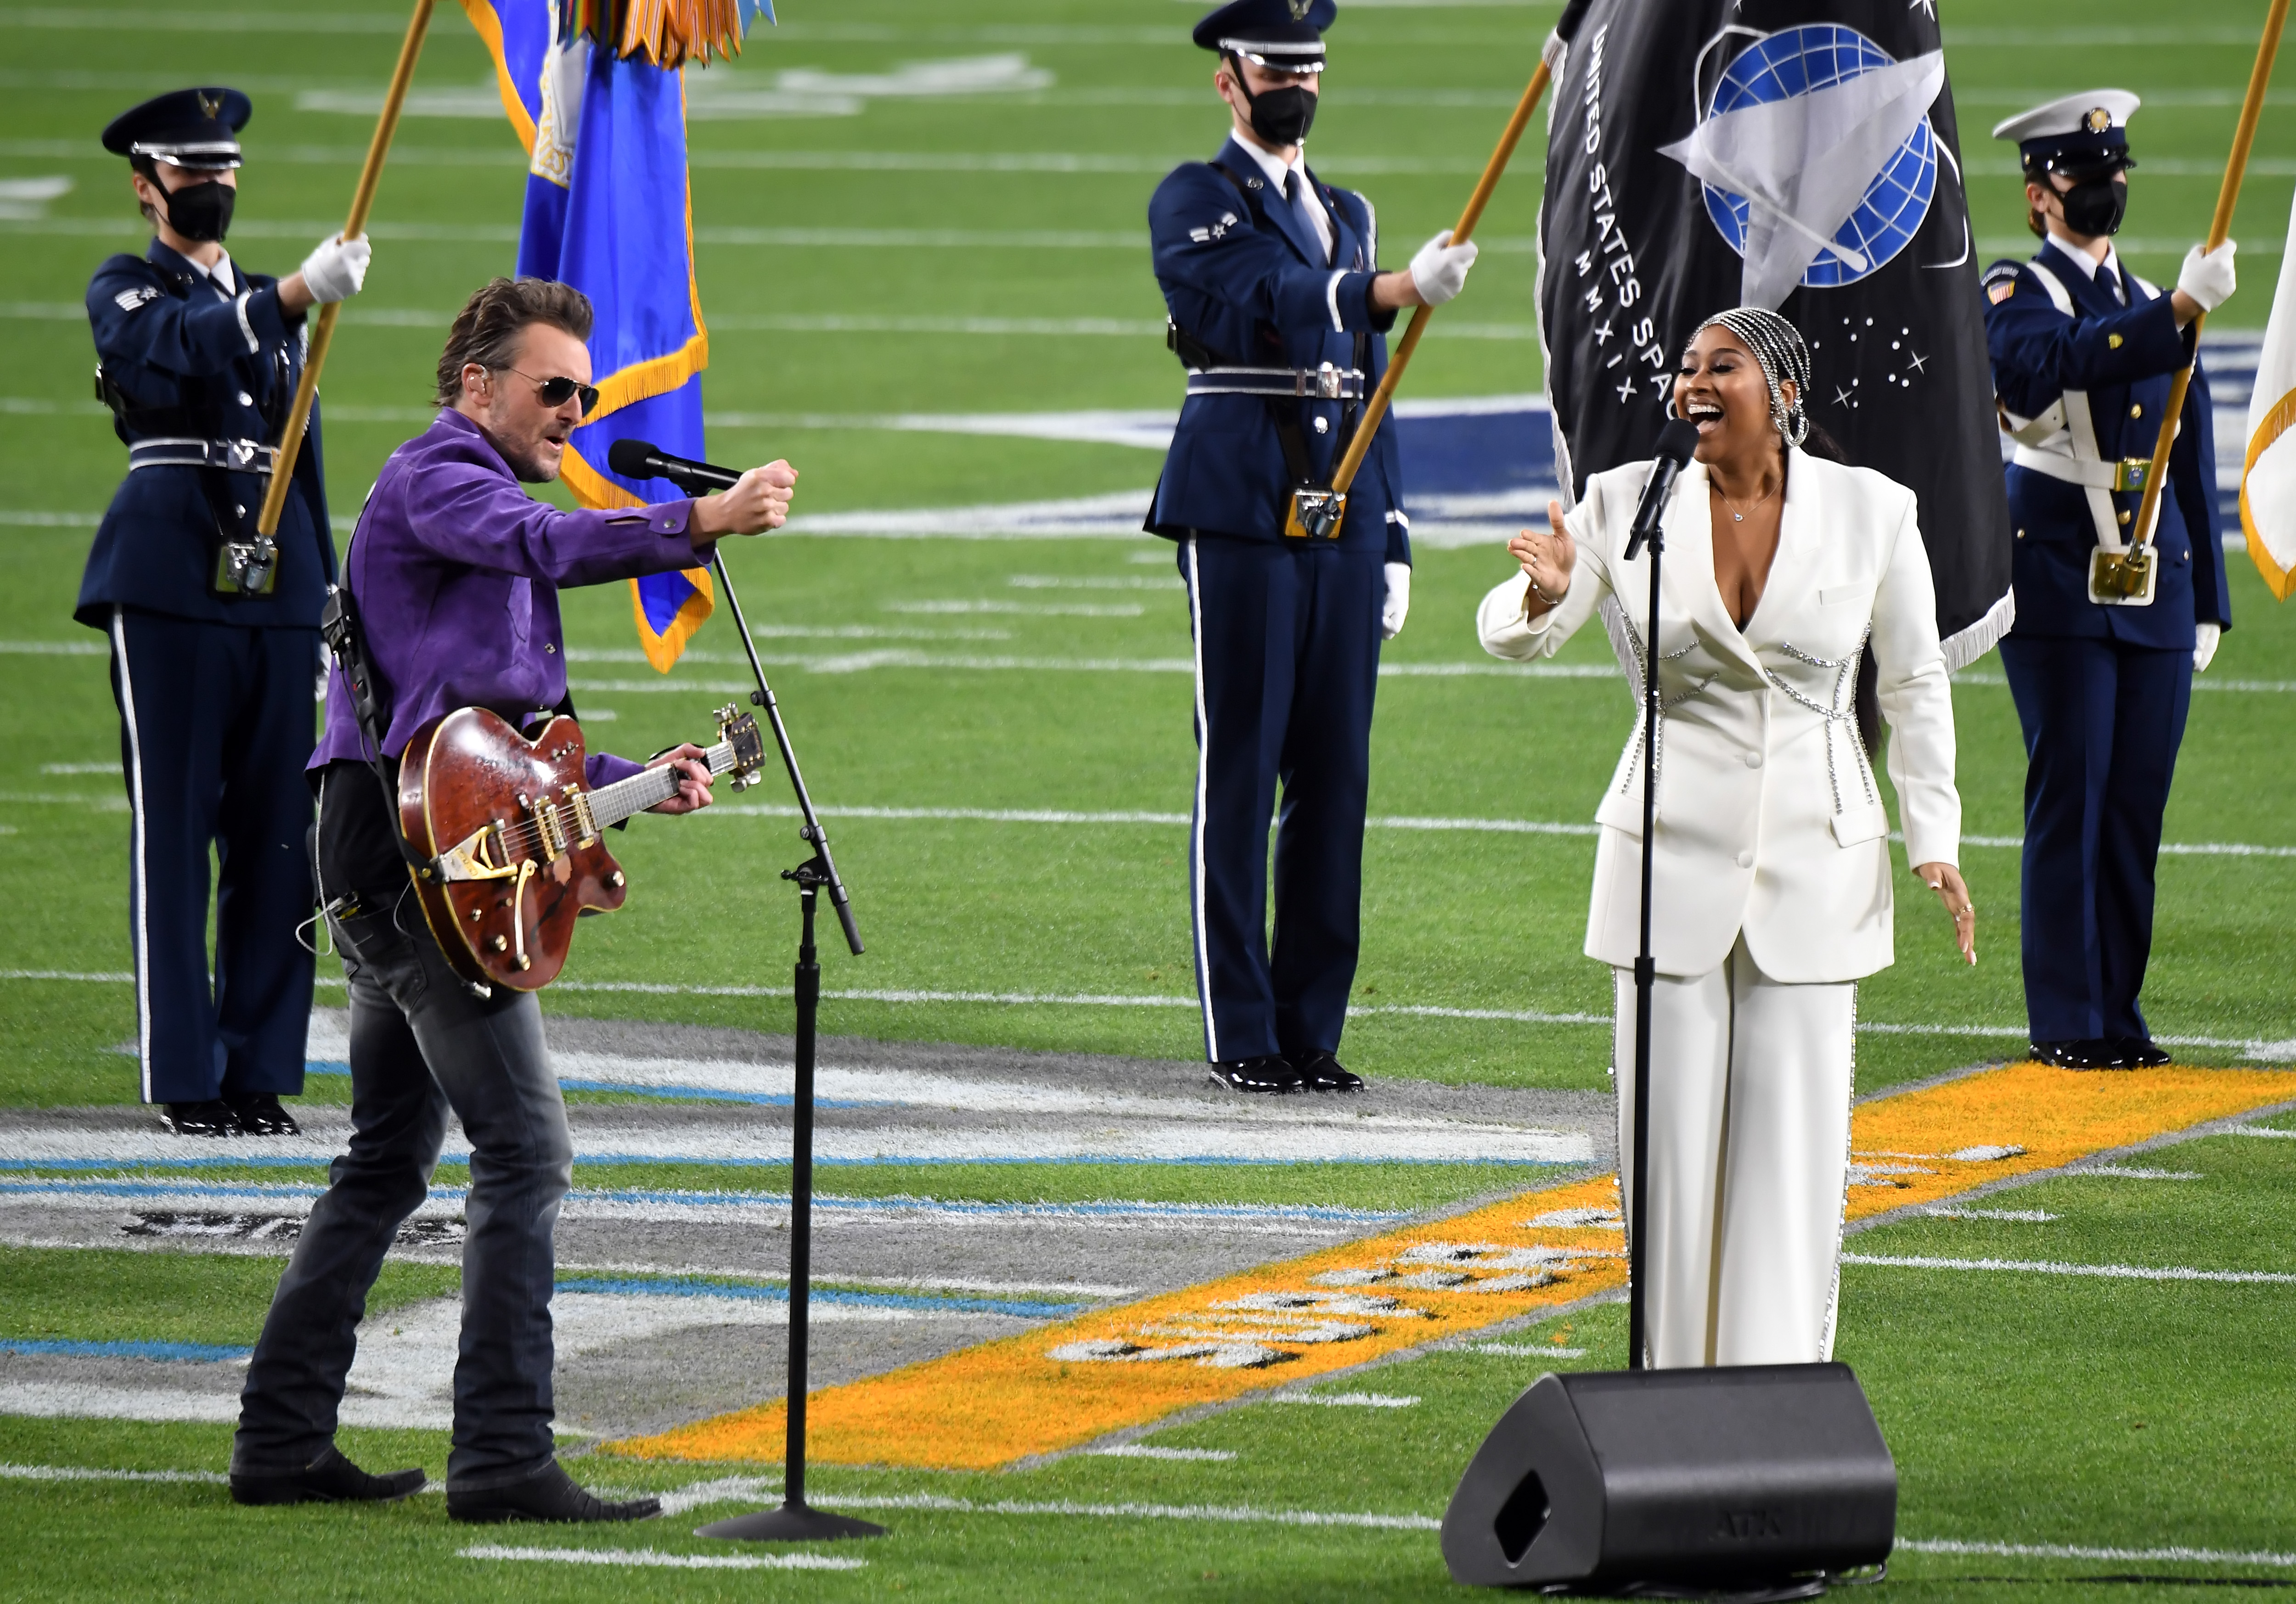 Eric Church and Jazmine Sullivan perform during the Super Bowl LV Pregame at Raymond James Stadium on February 07, 2021 in Tampa, Florida. (Photo by Kevin Mazur/Getty Images for TW)